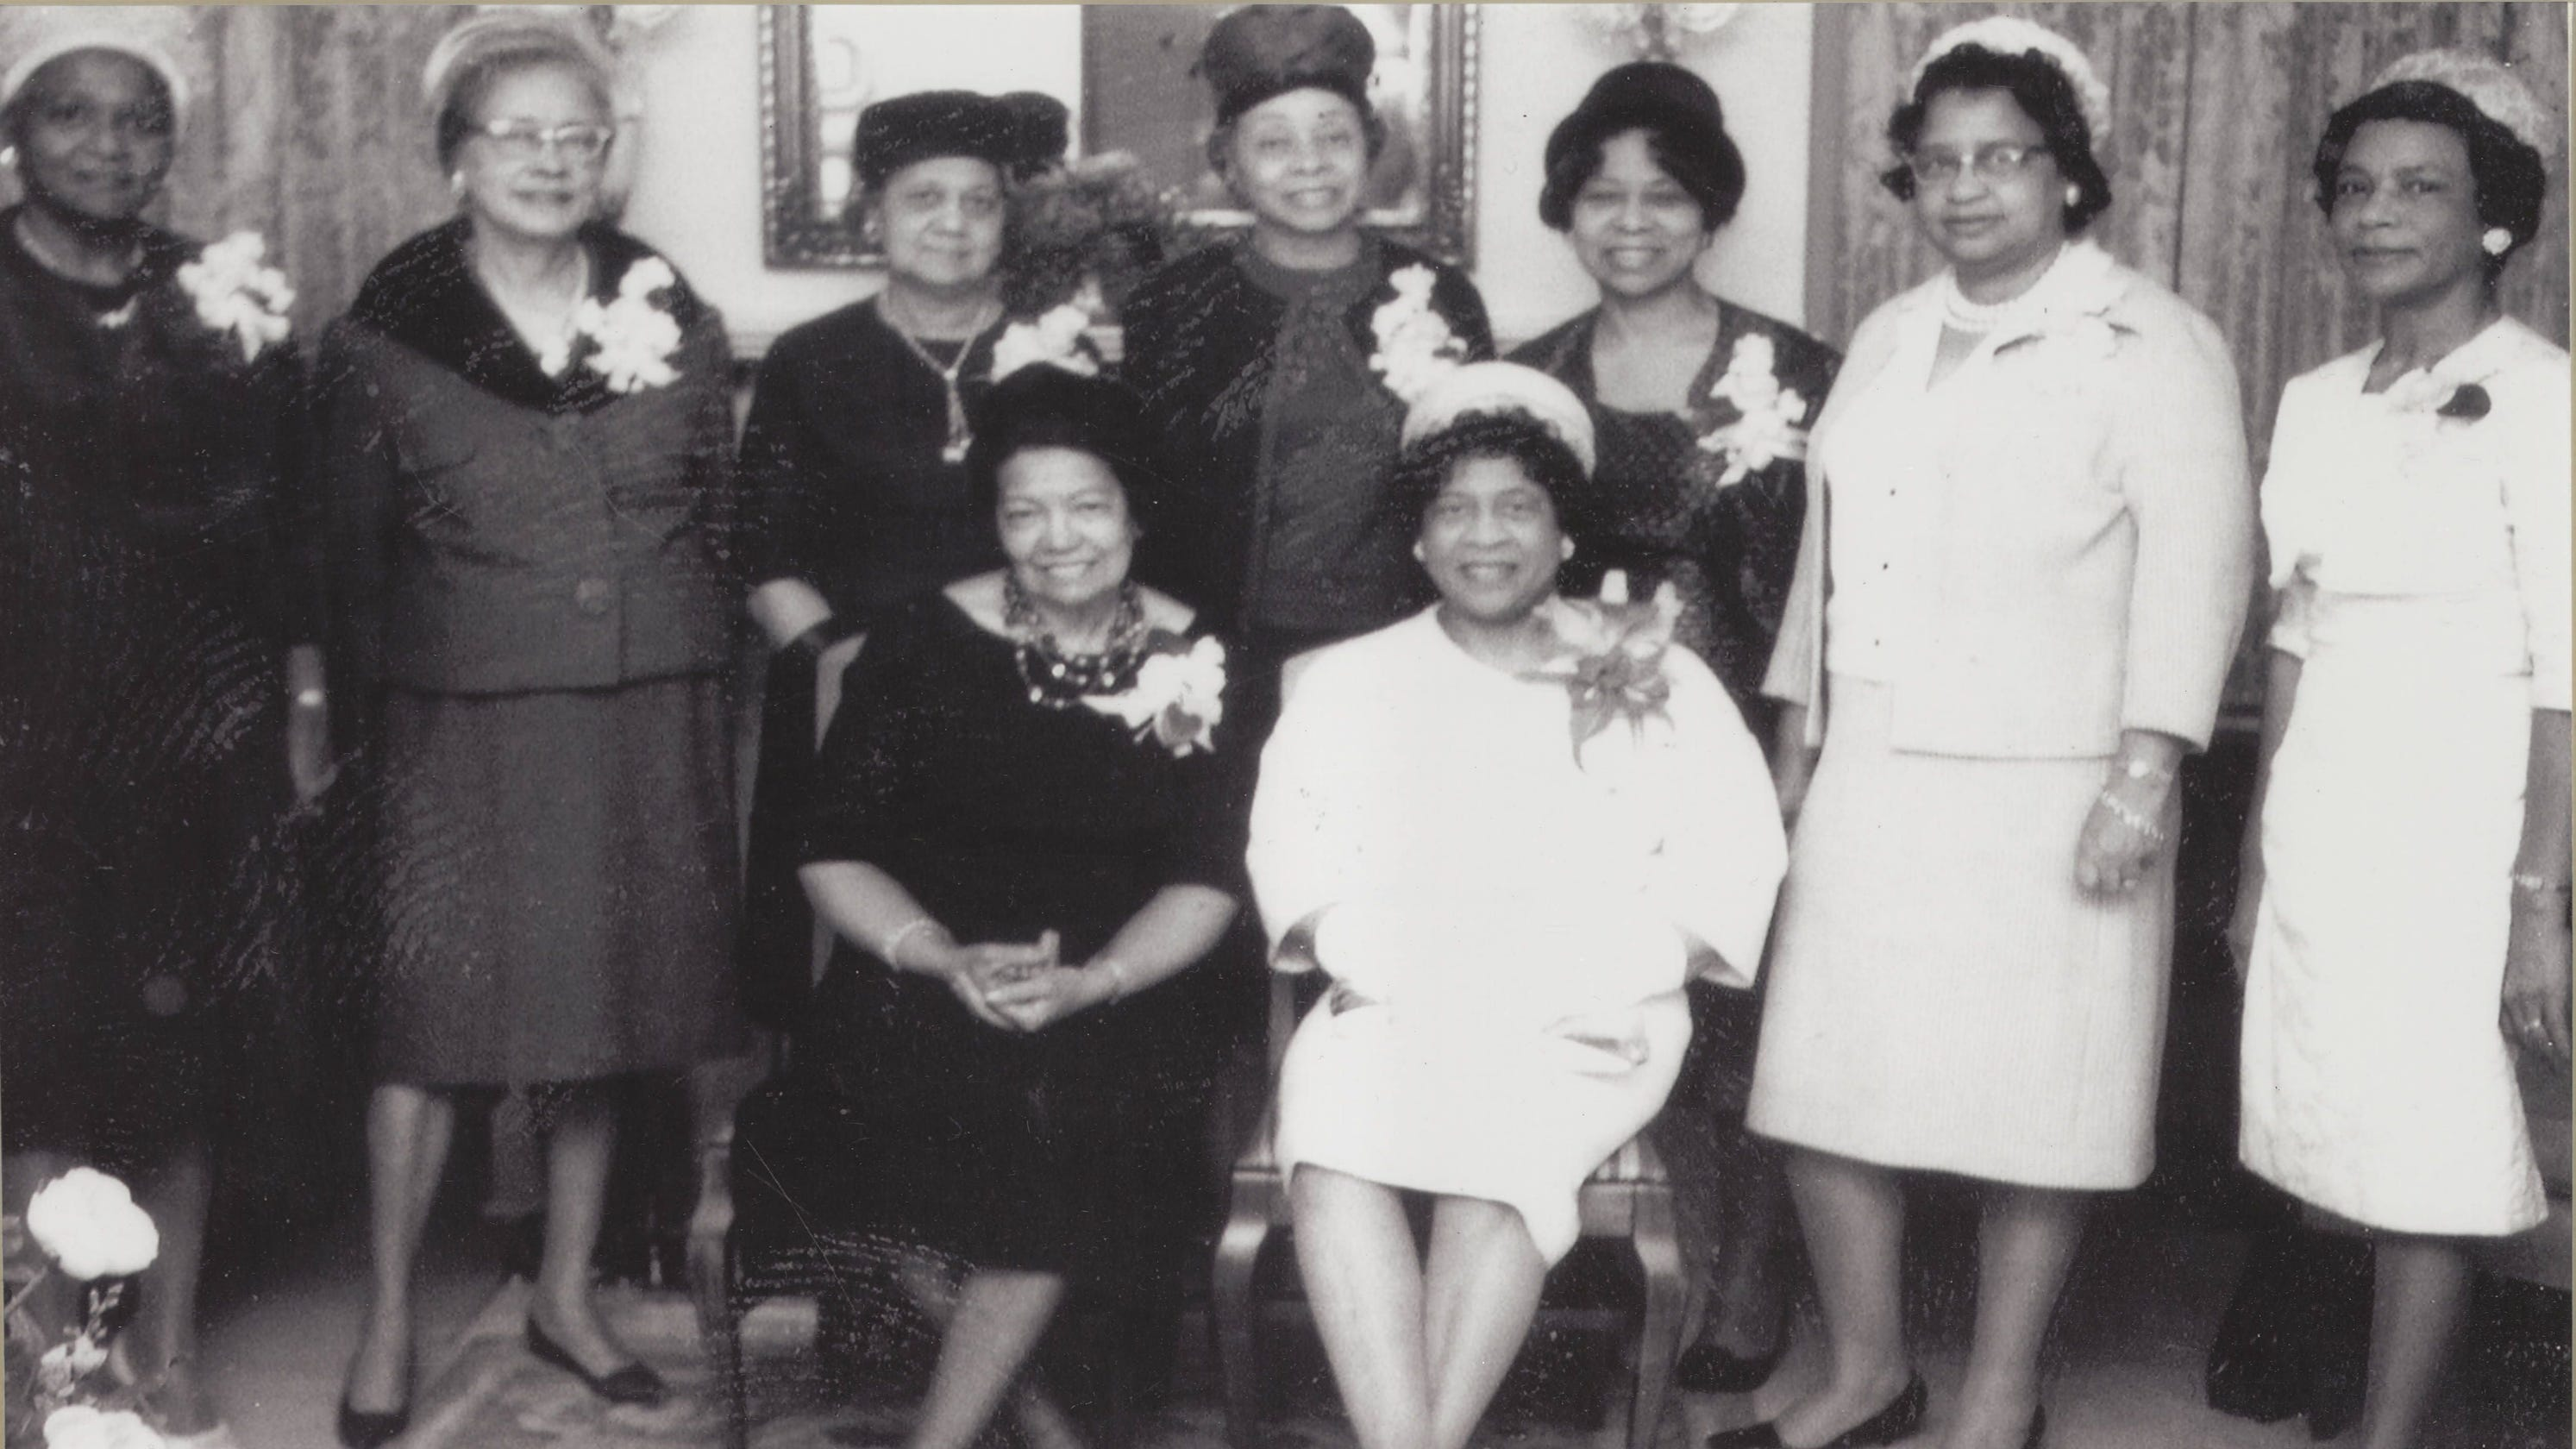 65 years after launching Montgomery's Bus Boycott, Black women still fight for a seat at the table